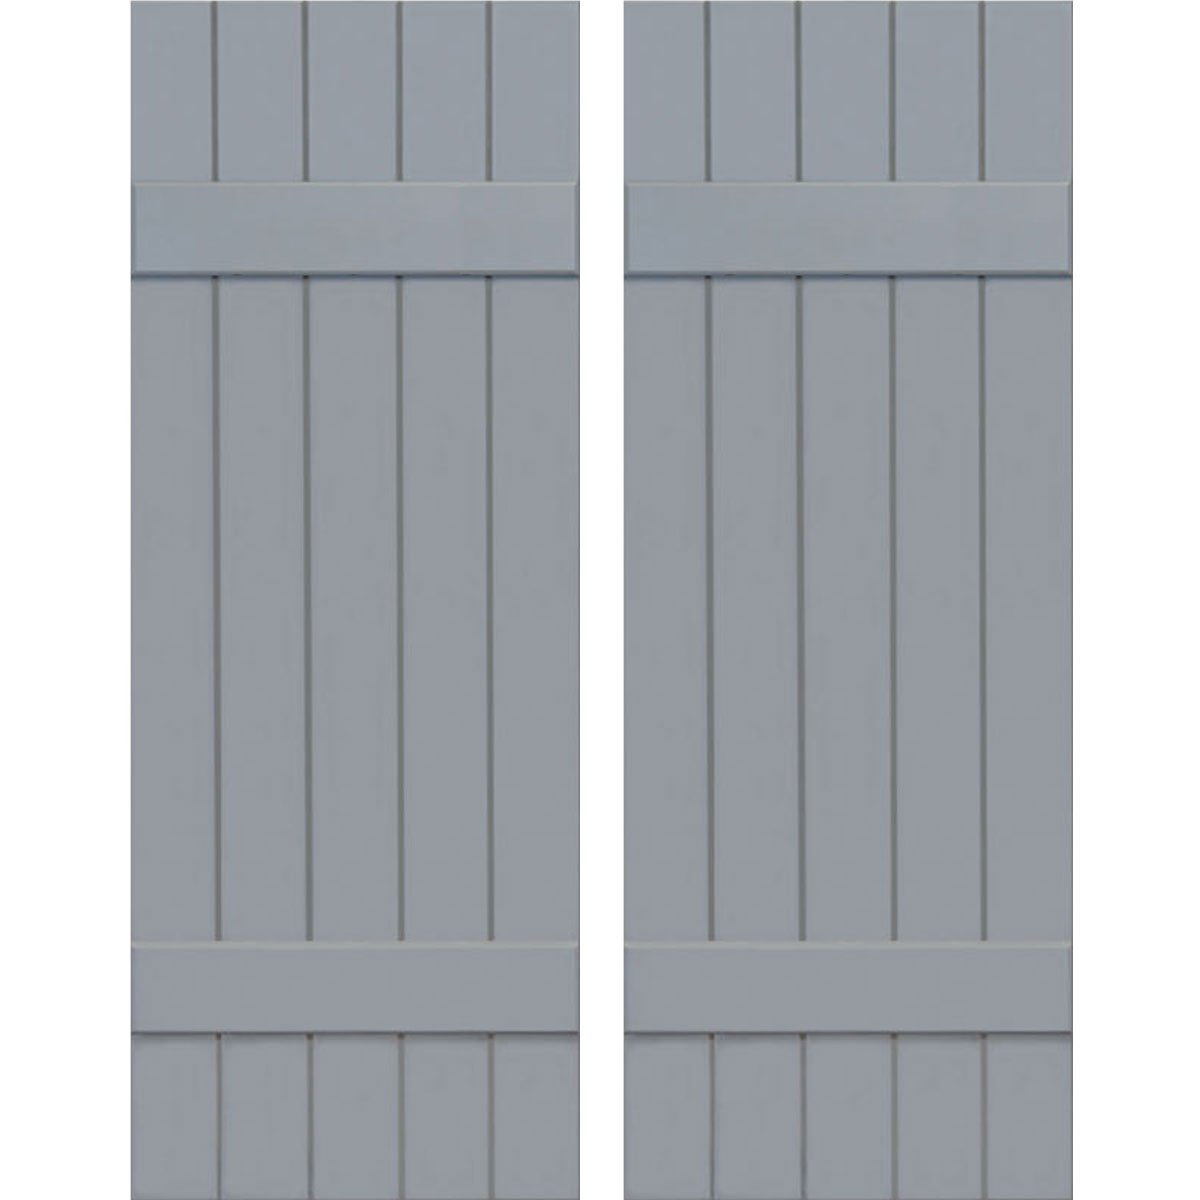 Ekena Millwork CWB18X036UNC Exterior Five Board Composite Wood Board-N-Batten Shutters with Installation Brackets (Per Pair), Unfinished, 18